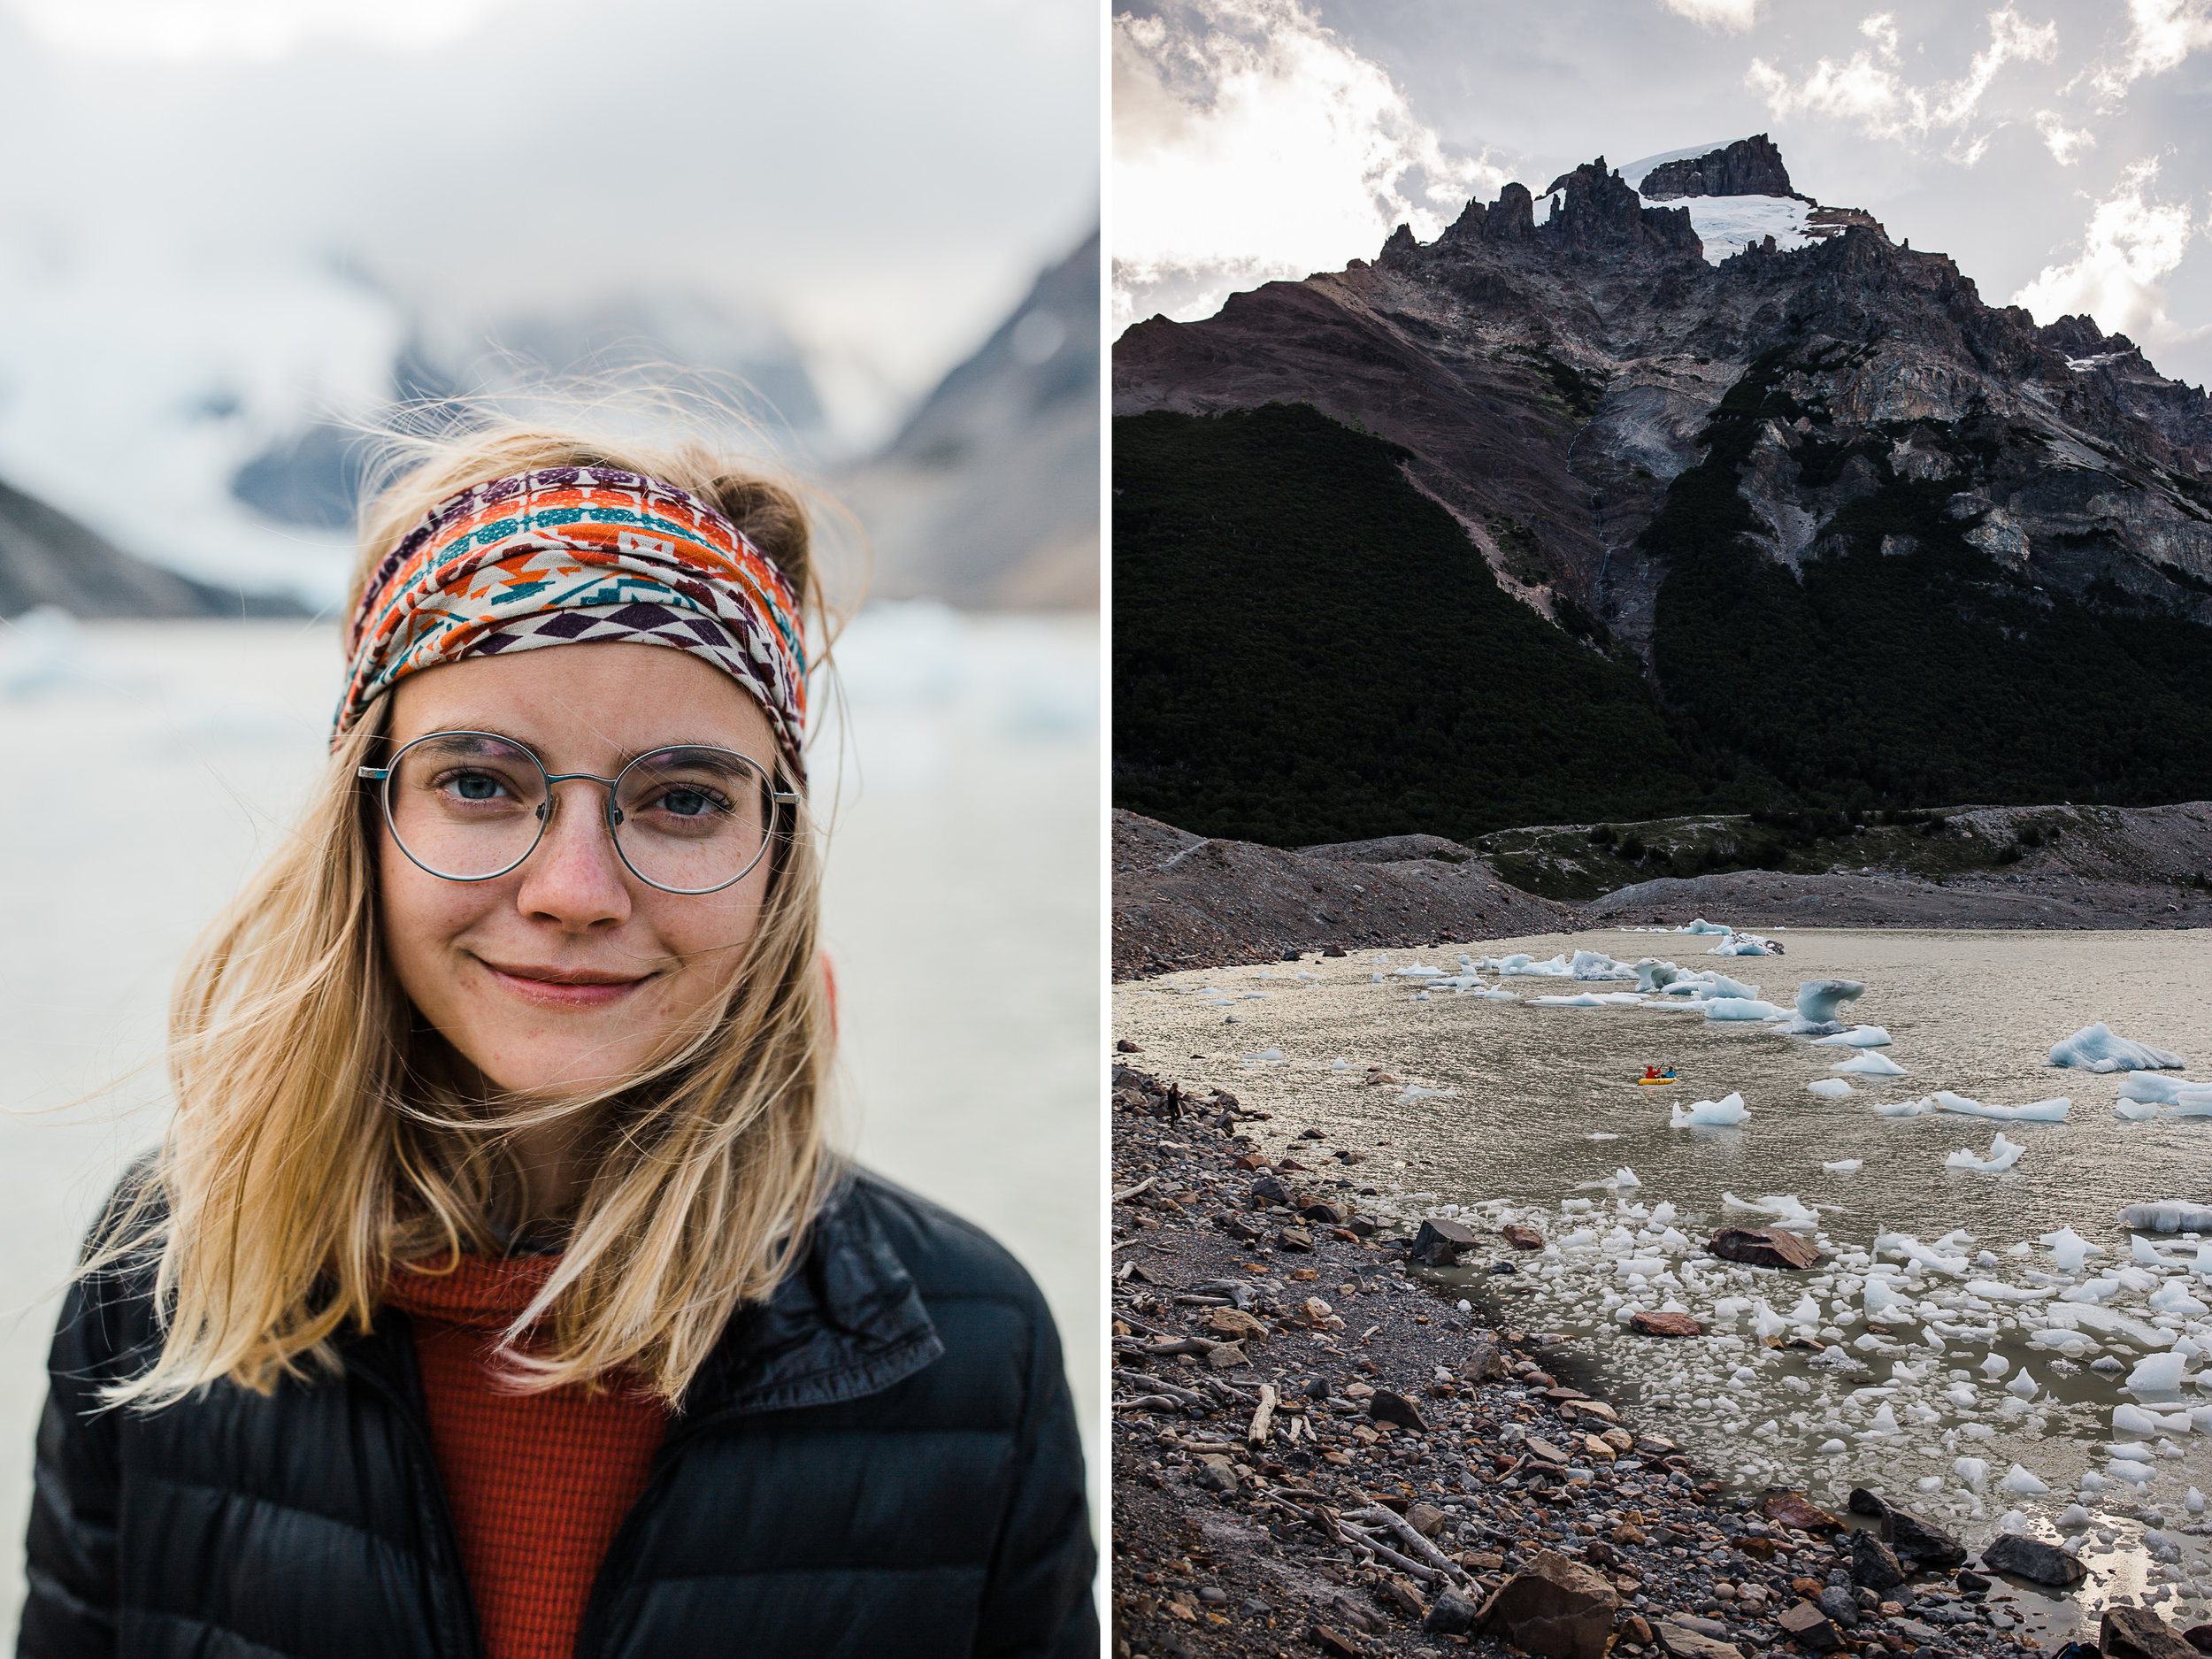 backpacking near cerro torre in Patagonia | campo de augostini + lago torre iceberg lagoon | adventure elopement inspiration | the hearnes adventure photography